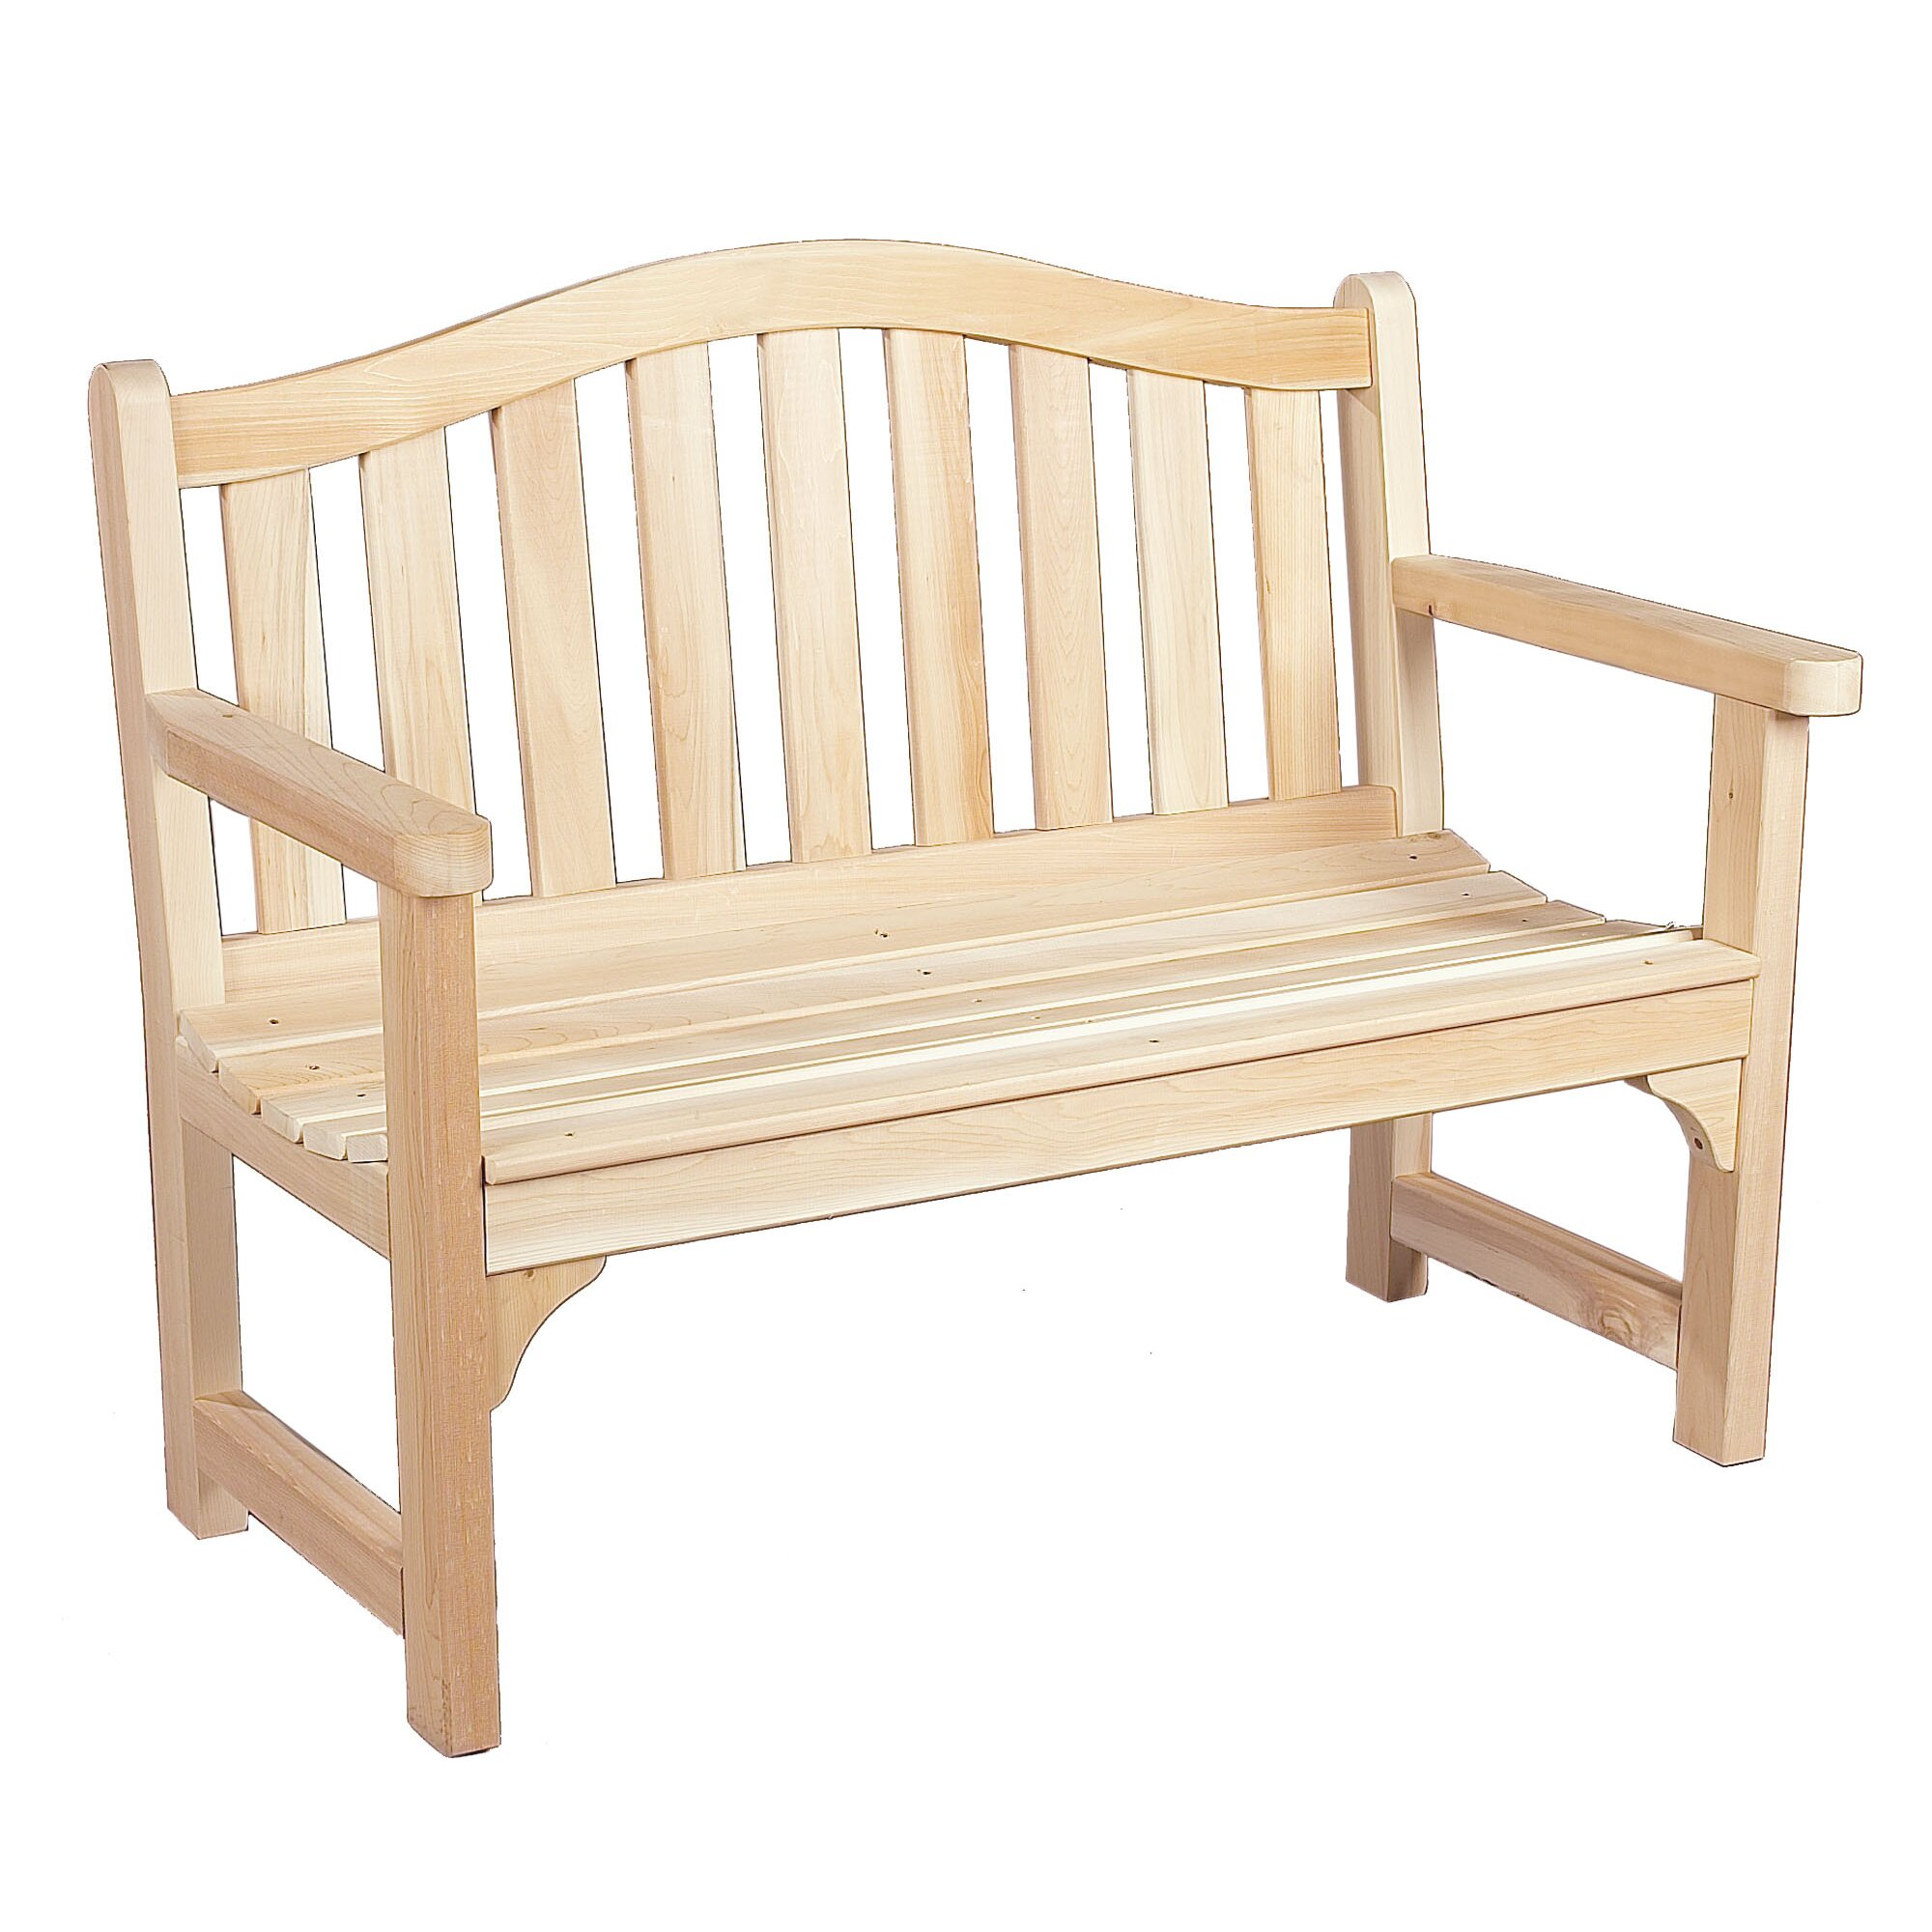 Rustic Cedar Cedar Camel Back Wood Bench Reviews Wayfair